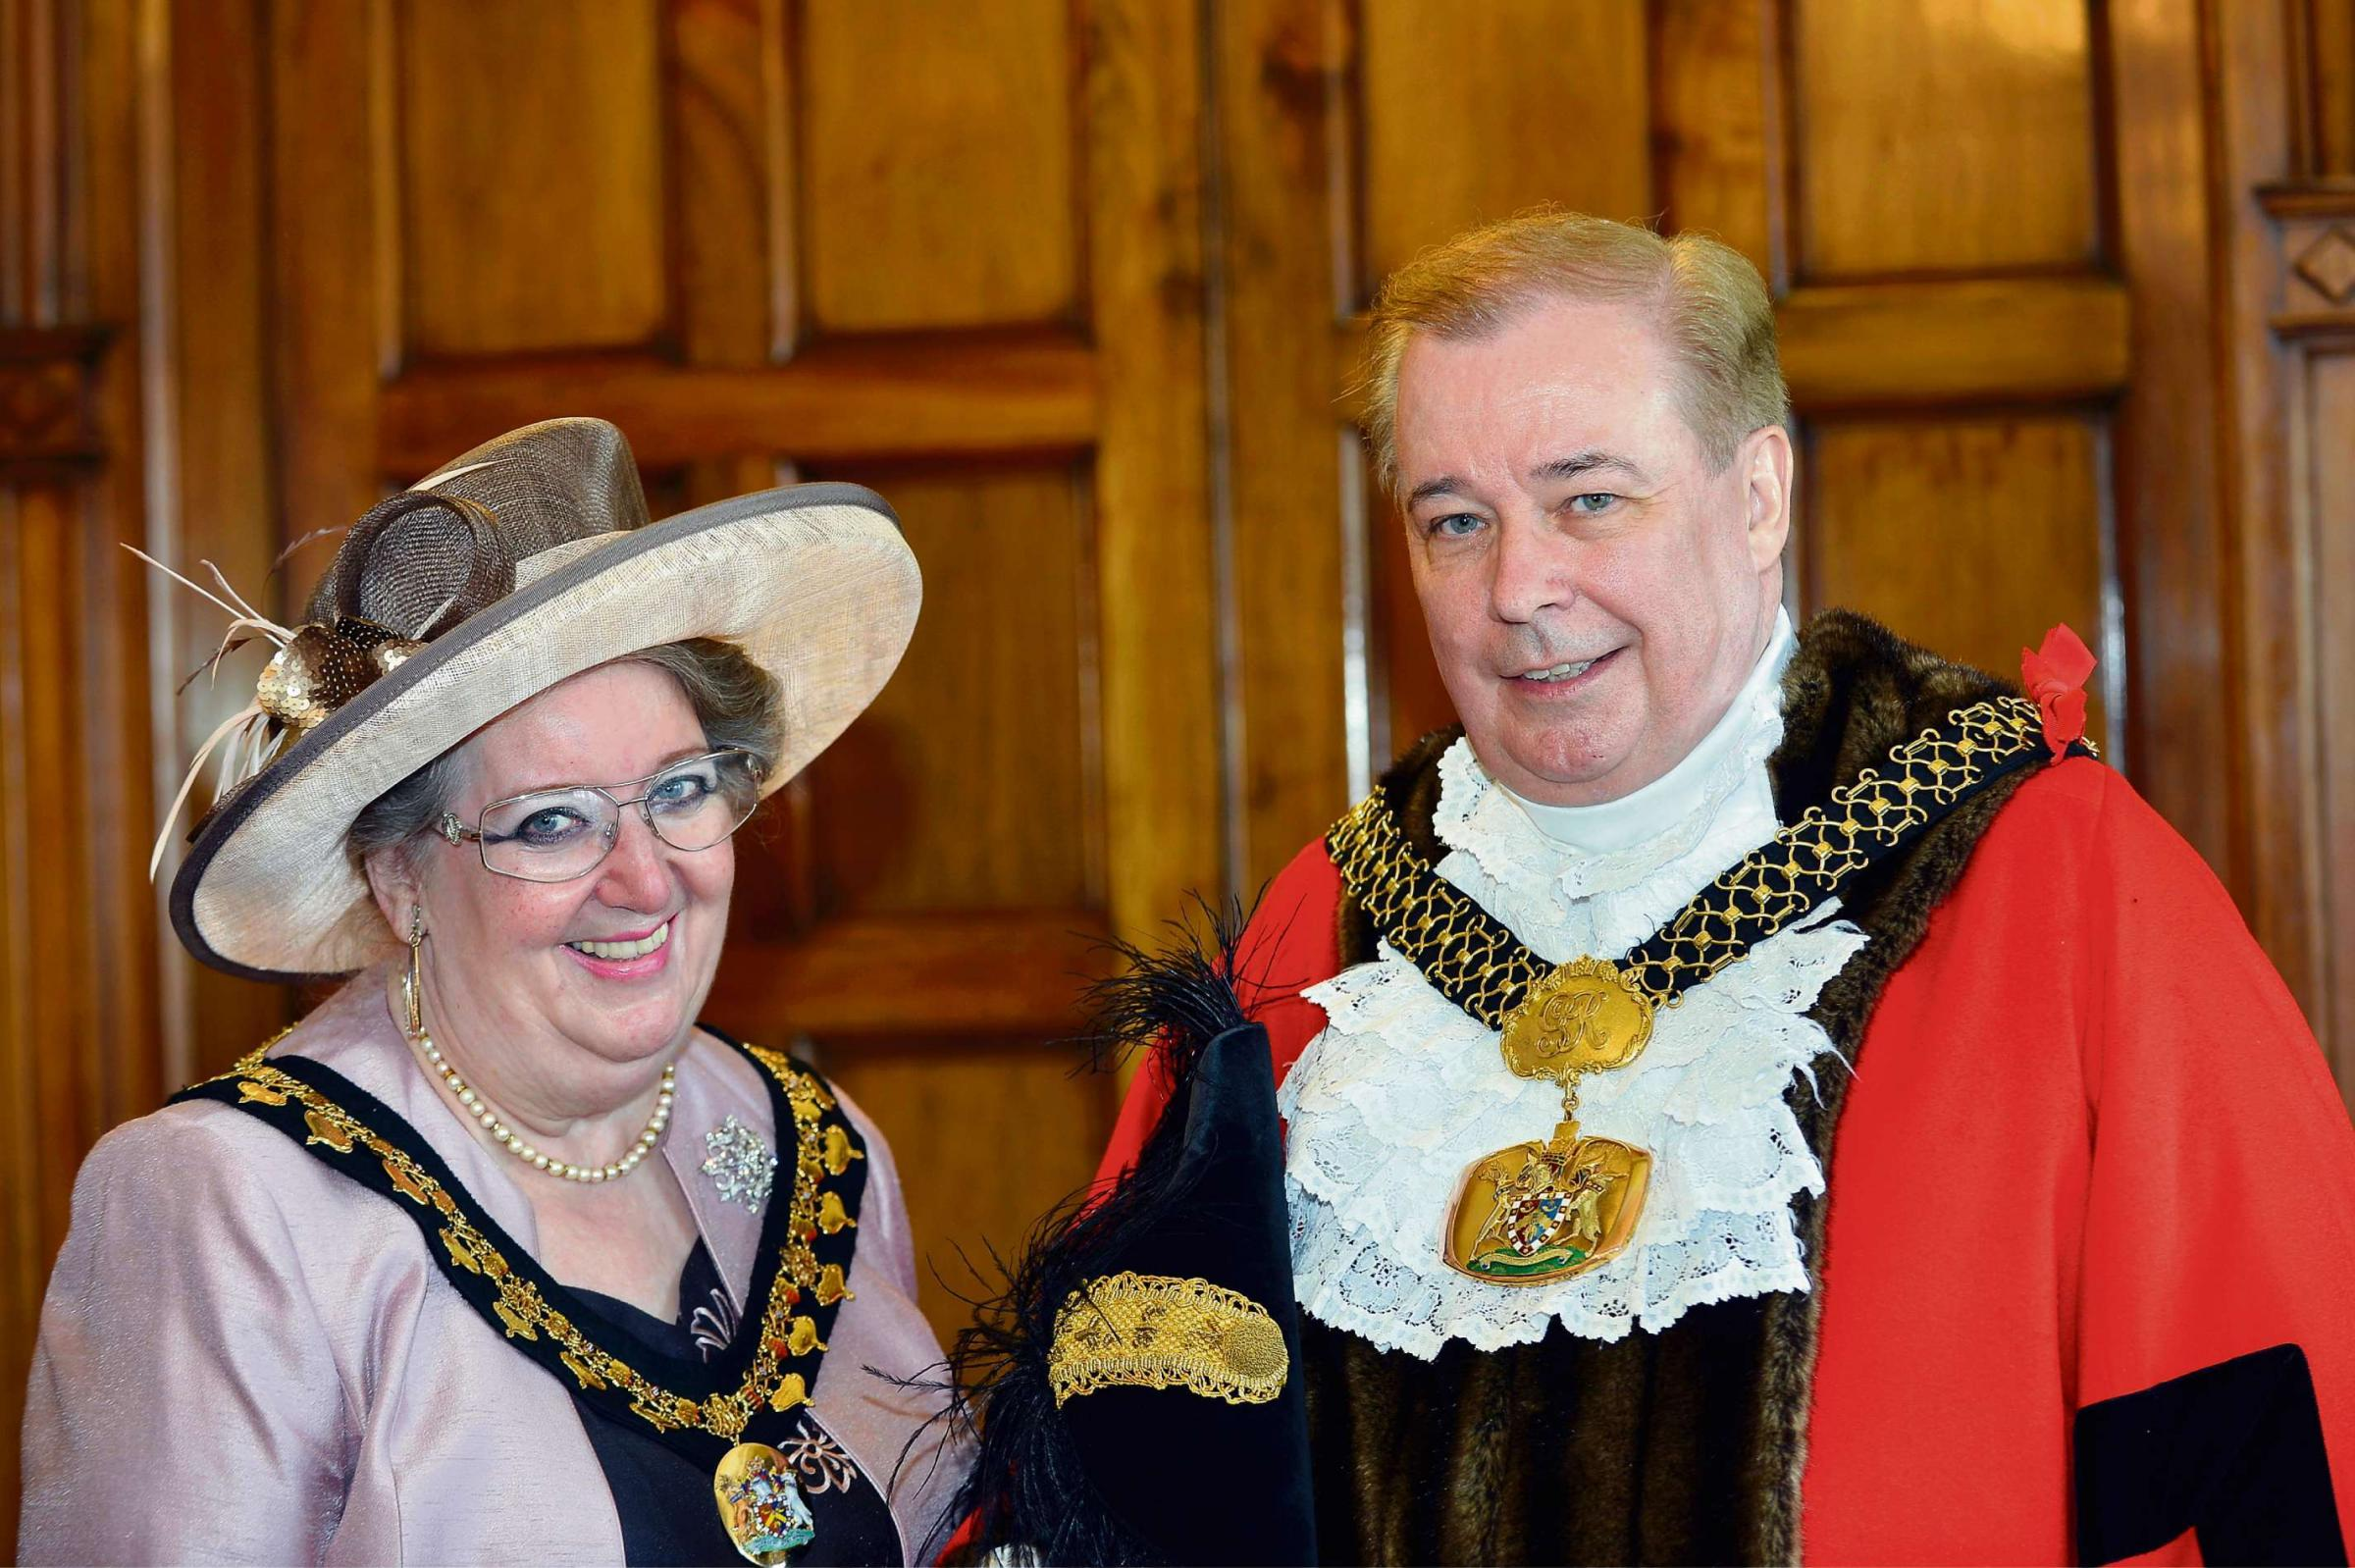 VIDEO: Bradford's new Lord Mayor is sworn in at City Hall ceremony